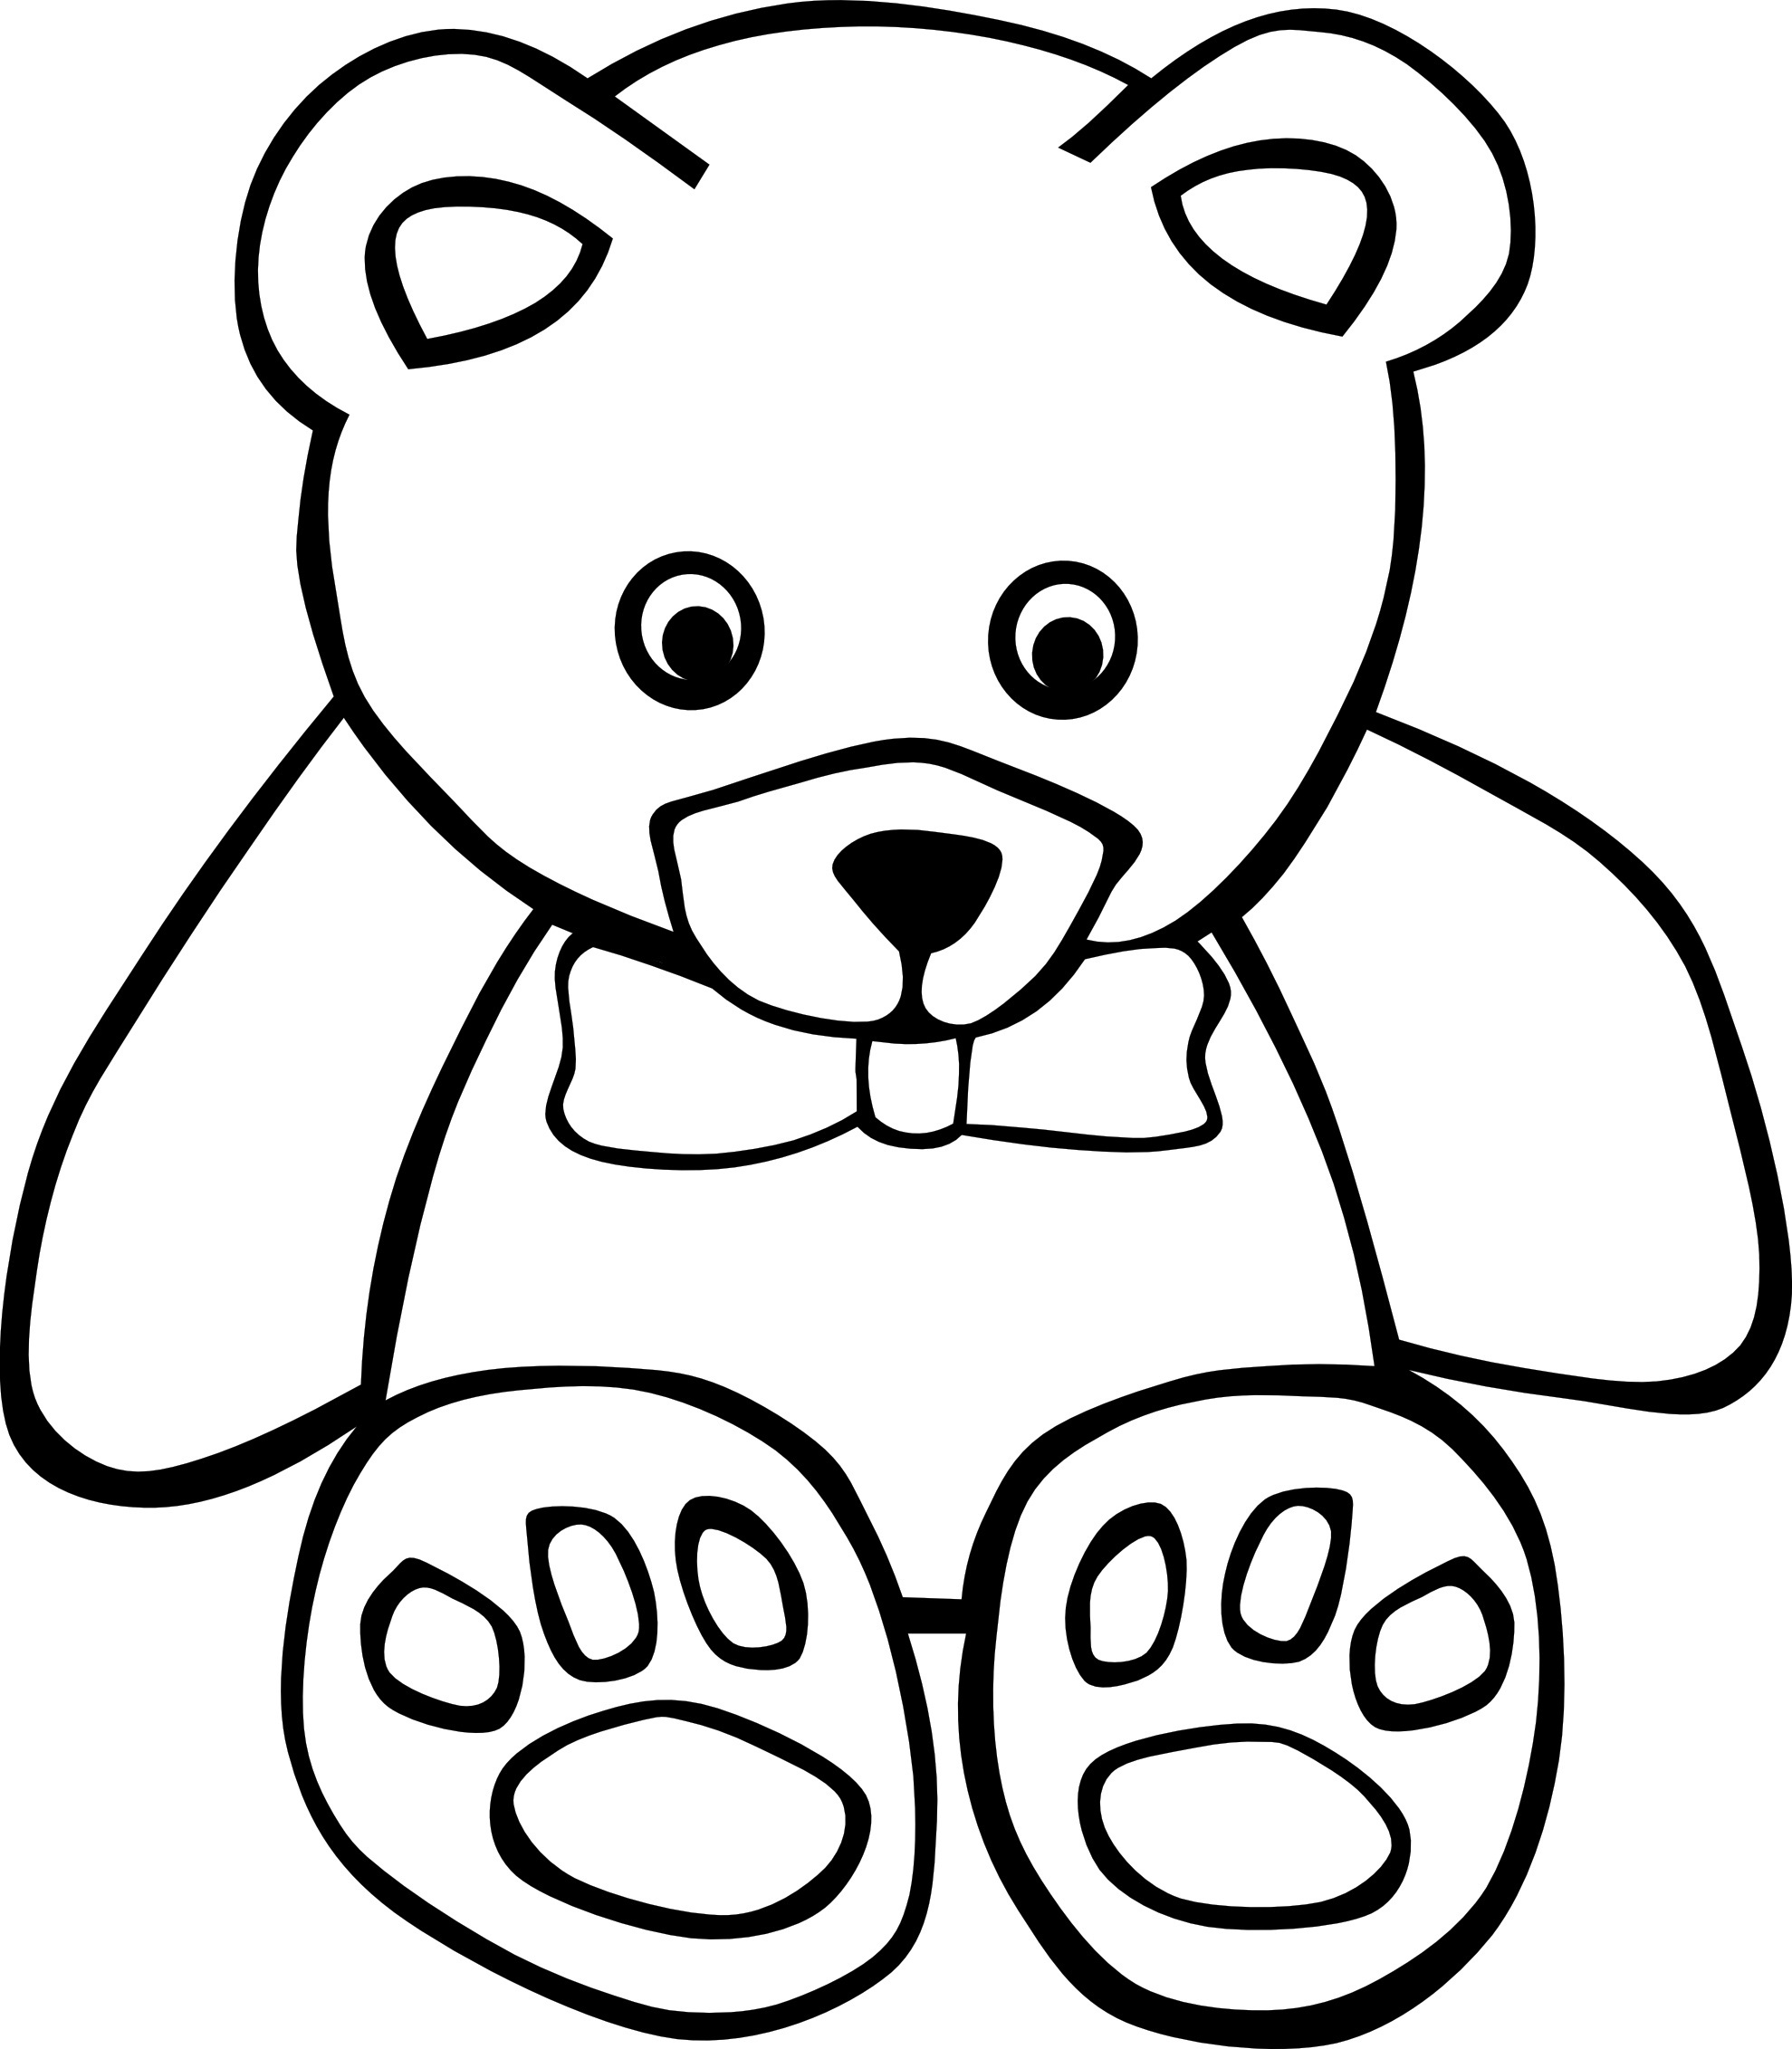 free pictures of teddy bears to colour free printable teddy bear coloring pages for kids pictures of teddy free colour to bears